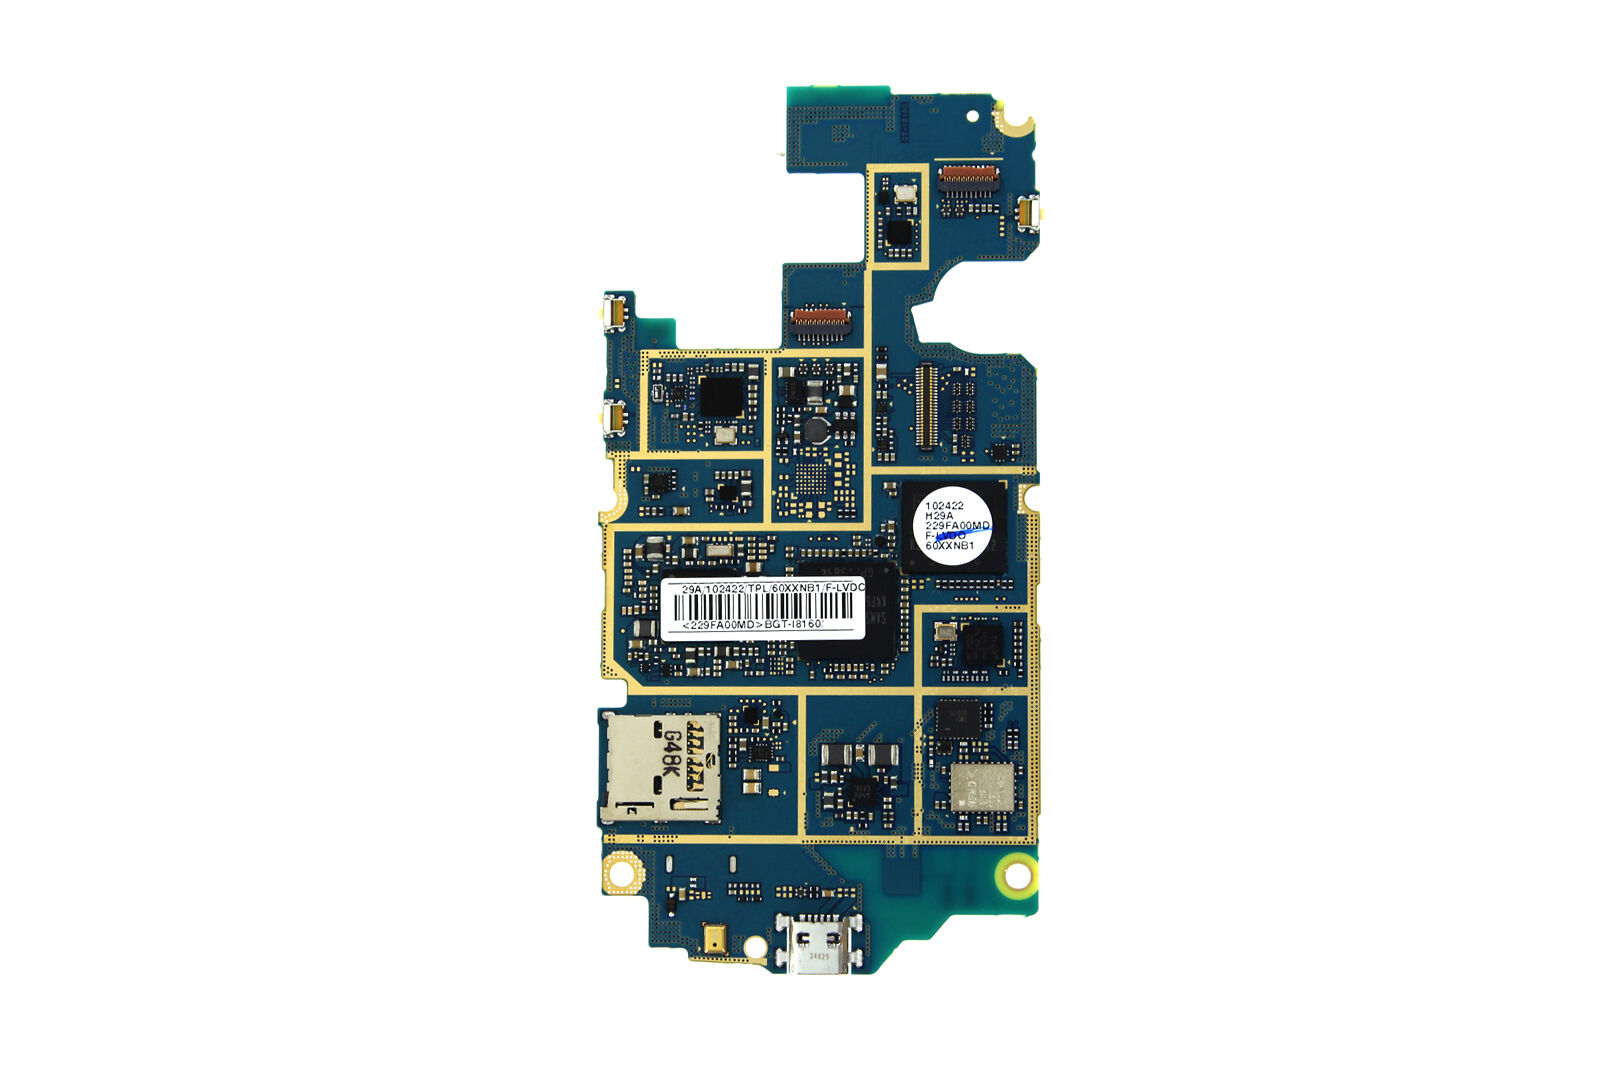 Genuine Samsung Galaxy Ace 2 I8160 Motherboard Gh82 06463a 495 V G313 Dual Sim 1 Of 1only 0 Available